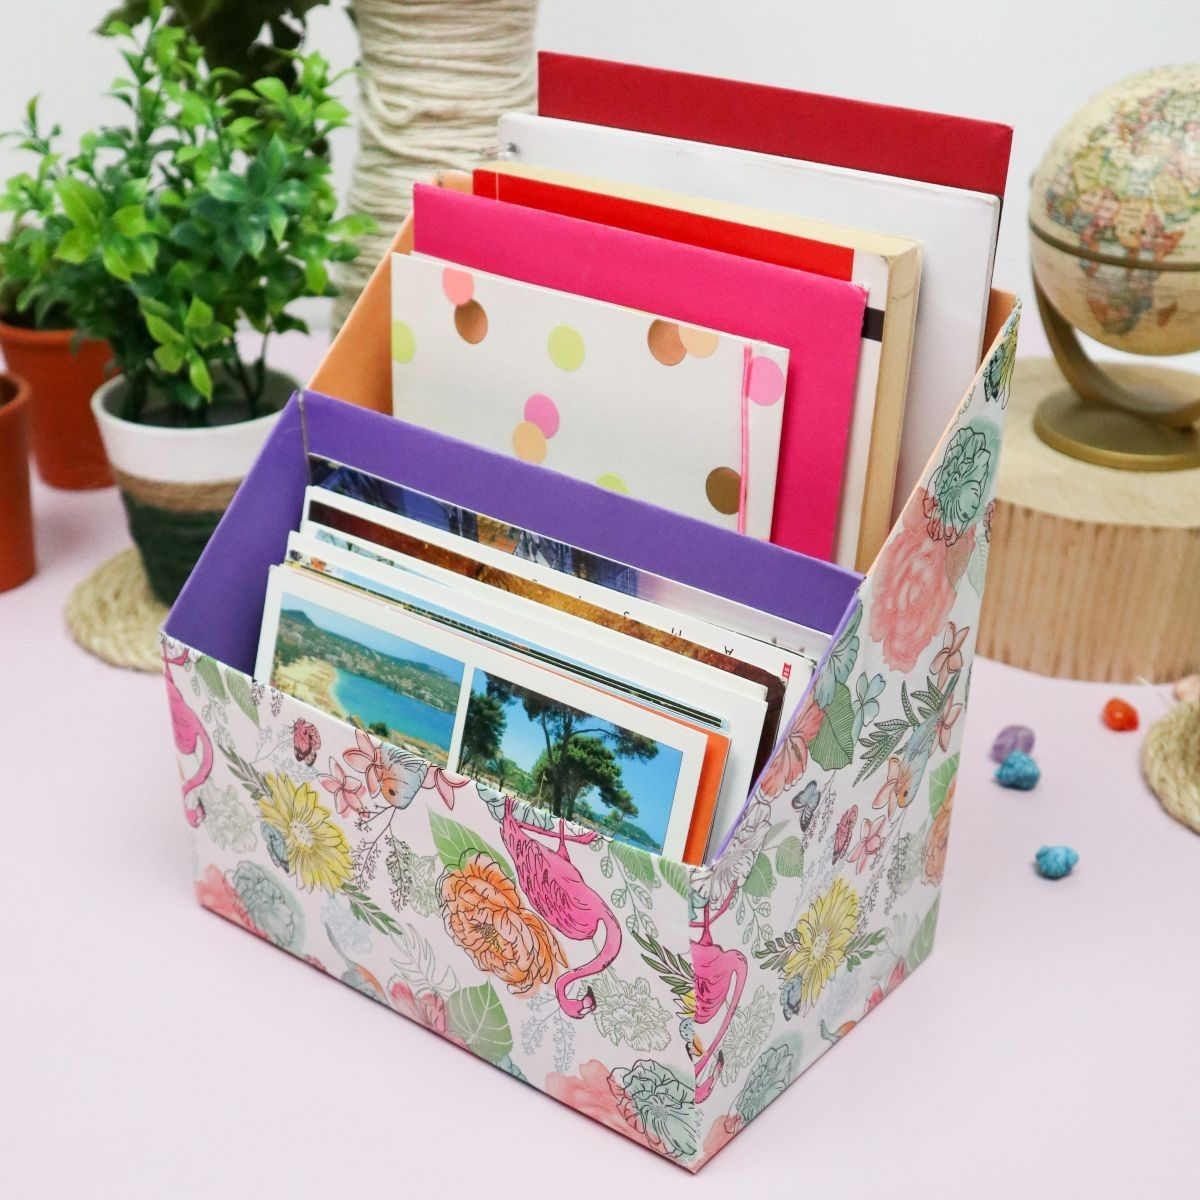 Office Decorating Ideas on a Budget 6 diy desk organizer out of cereal boxes featured The Old Summers Home Make your workspace more enjoyable with these office decorating ideas on a budget. You'll be more productive with a pleasant work atmosphere!